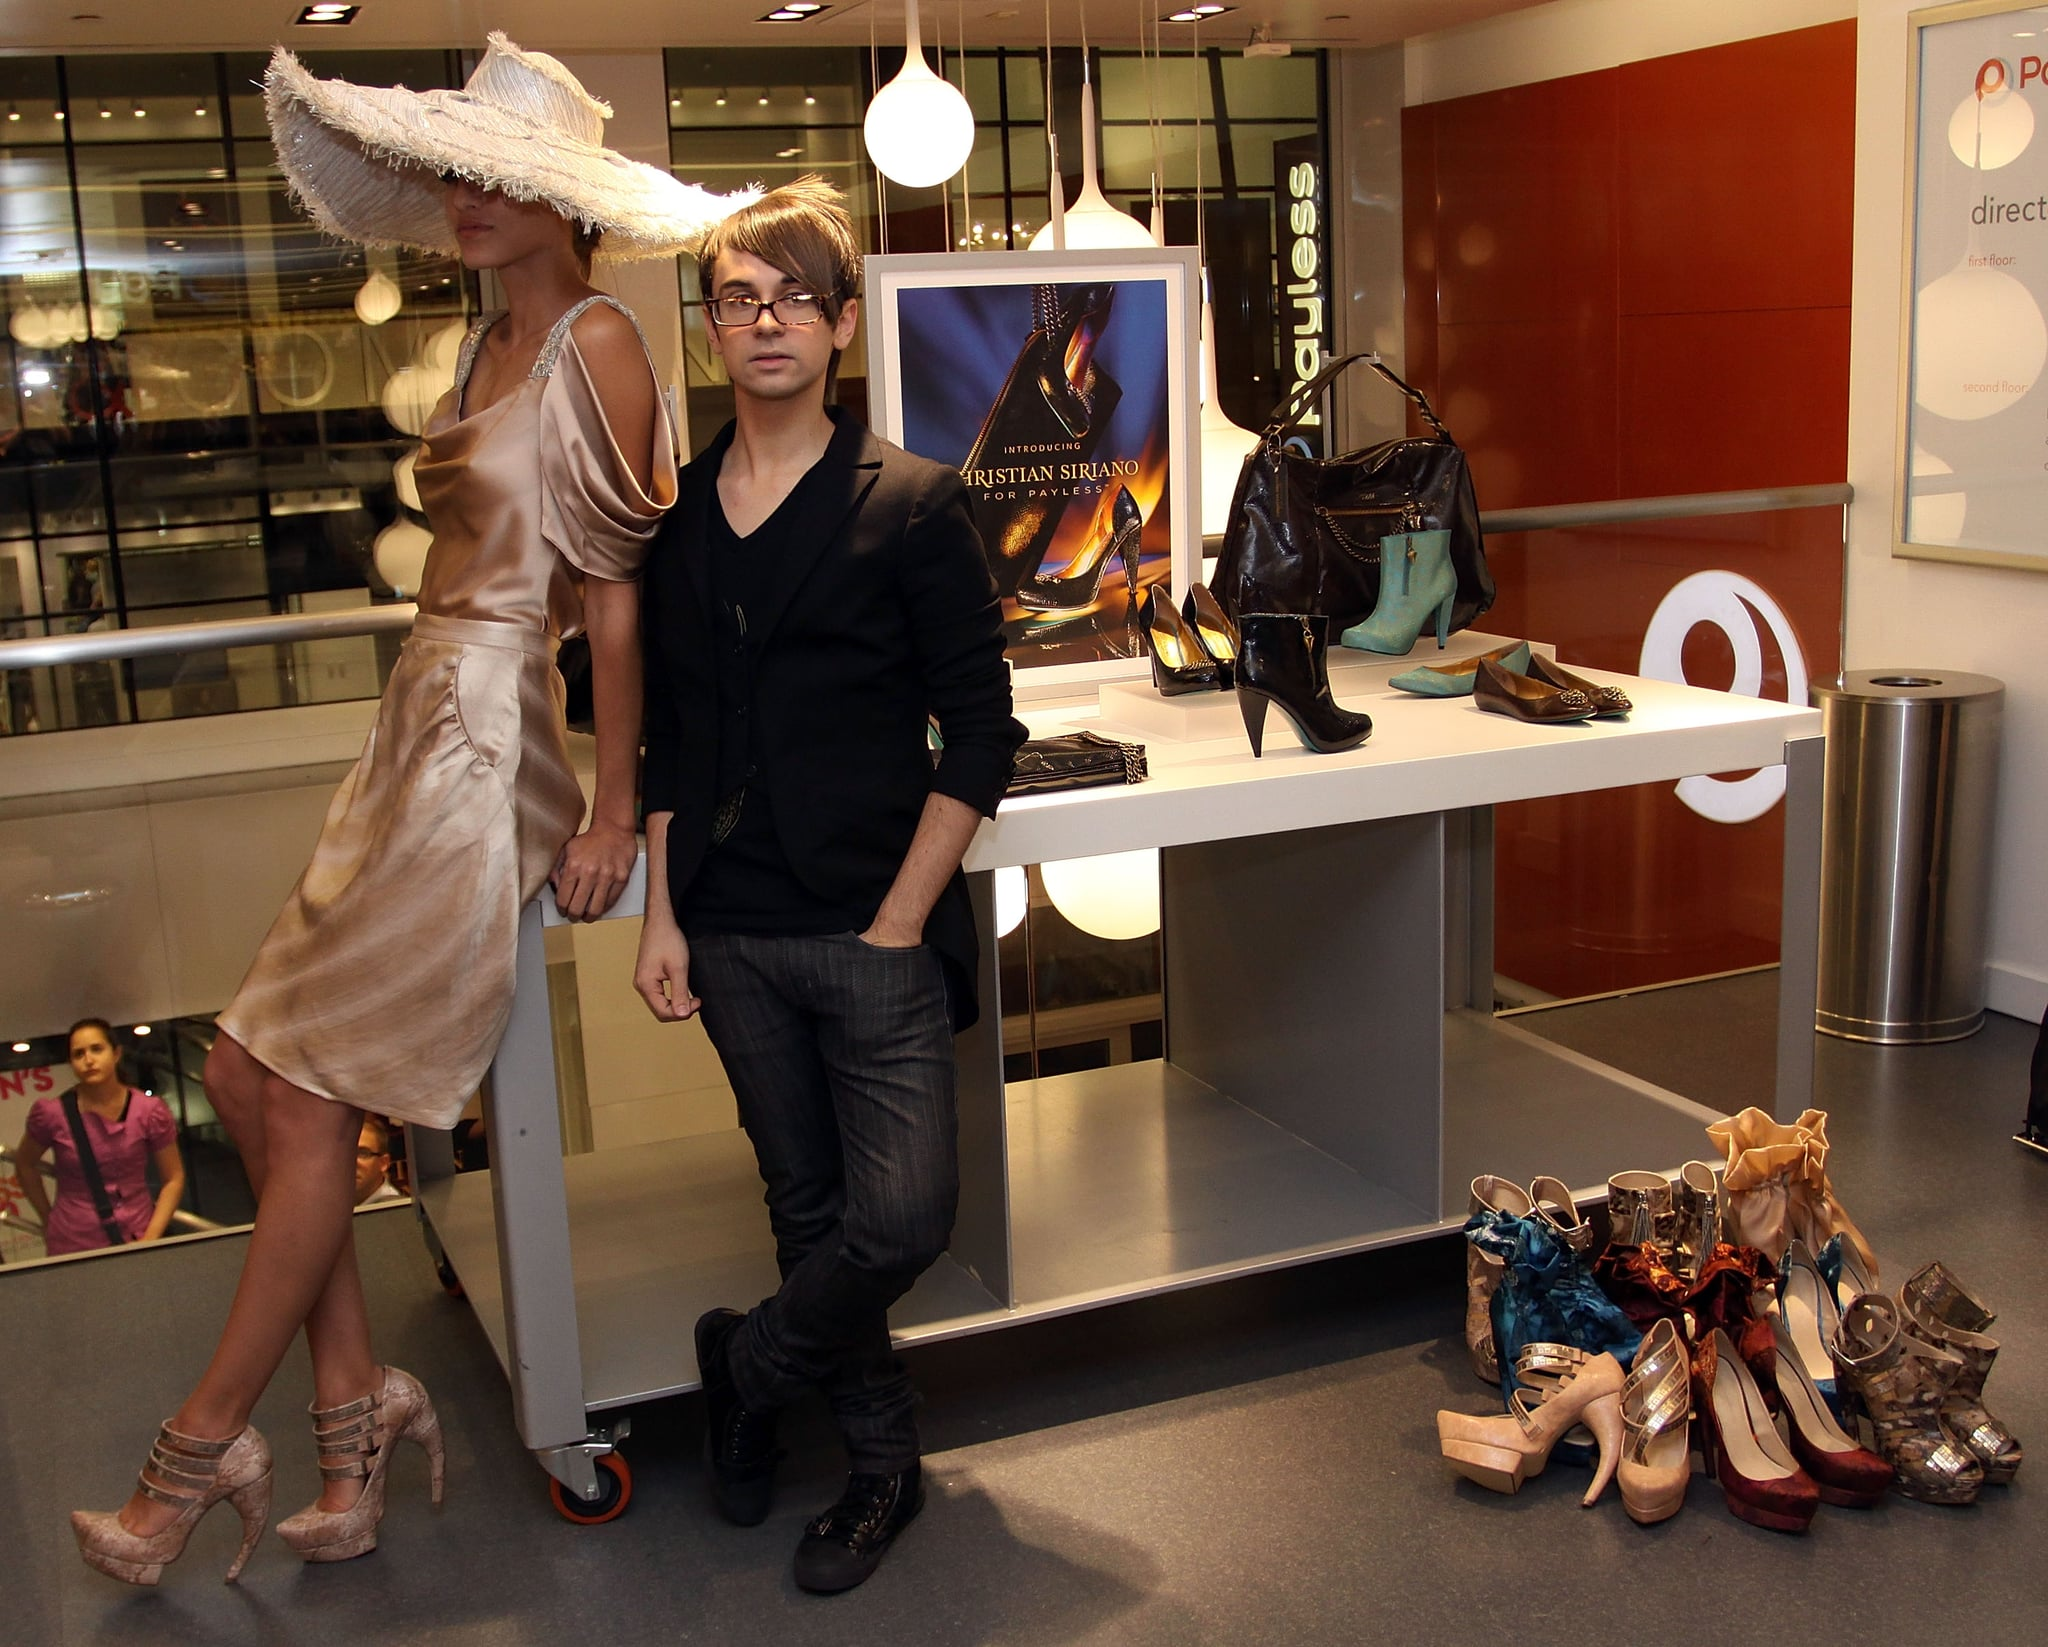 Christian Siriano's latest collections